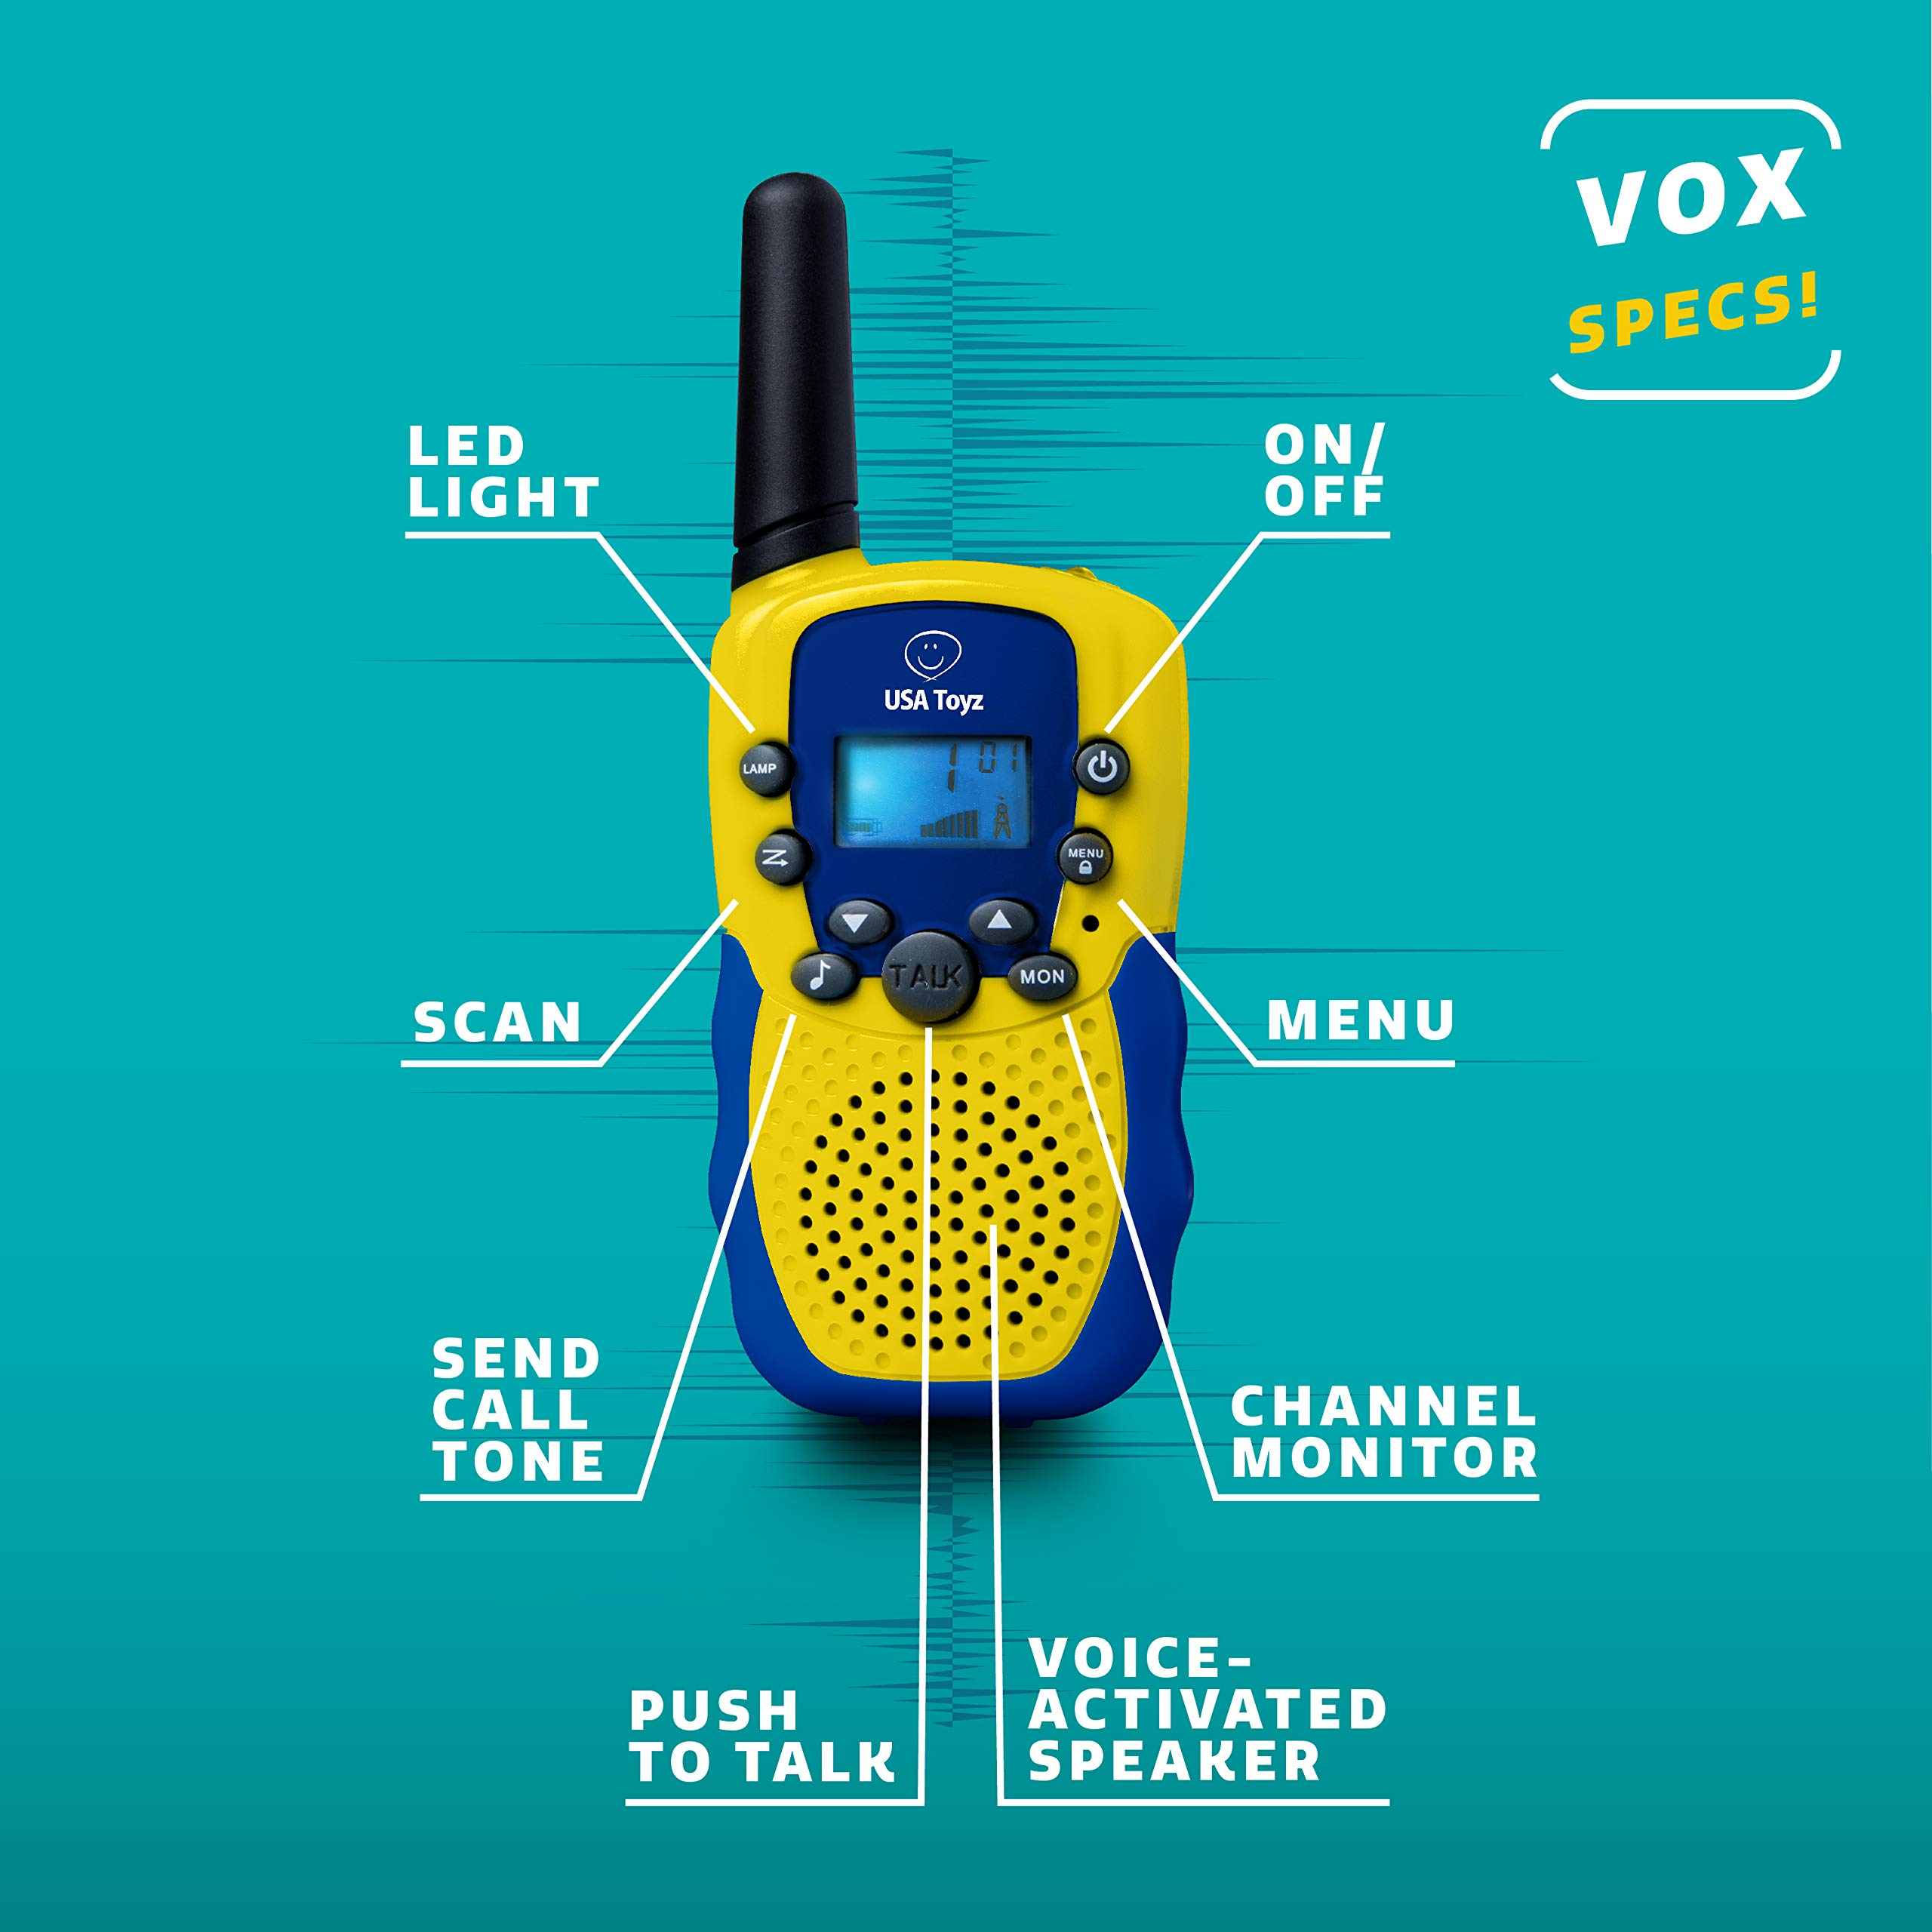 USA Toyz Walkie Talkies with Binoculars for Kids - Vox Box Voice Activated Walkie Talkies for Boys or Girls, Long Range Walkie Talkie Toys Set by USA Toyz (Image #3)